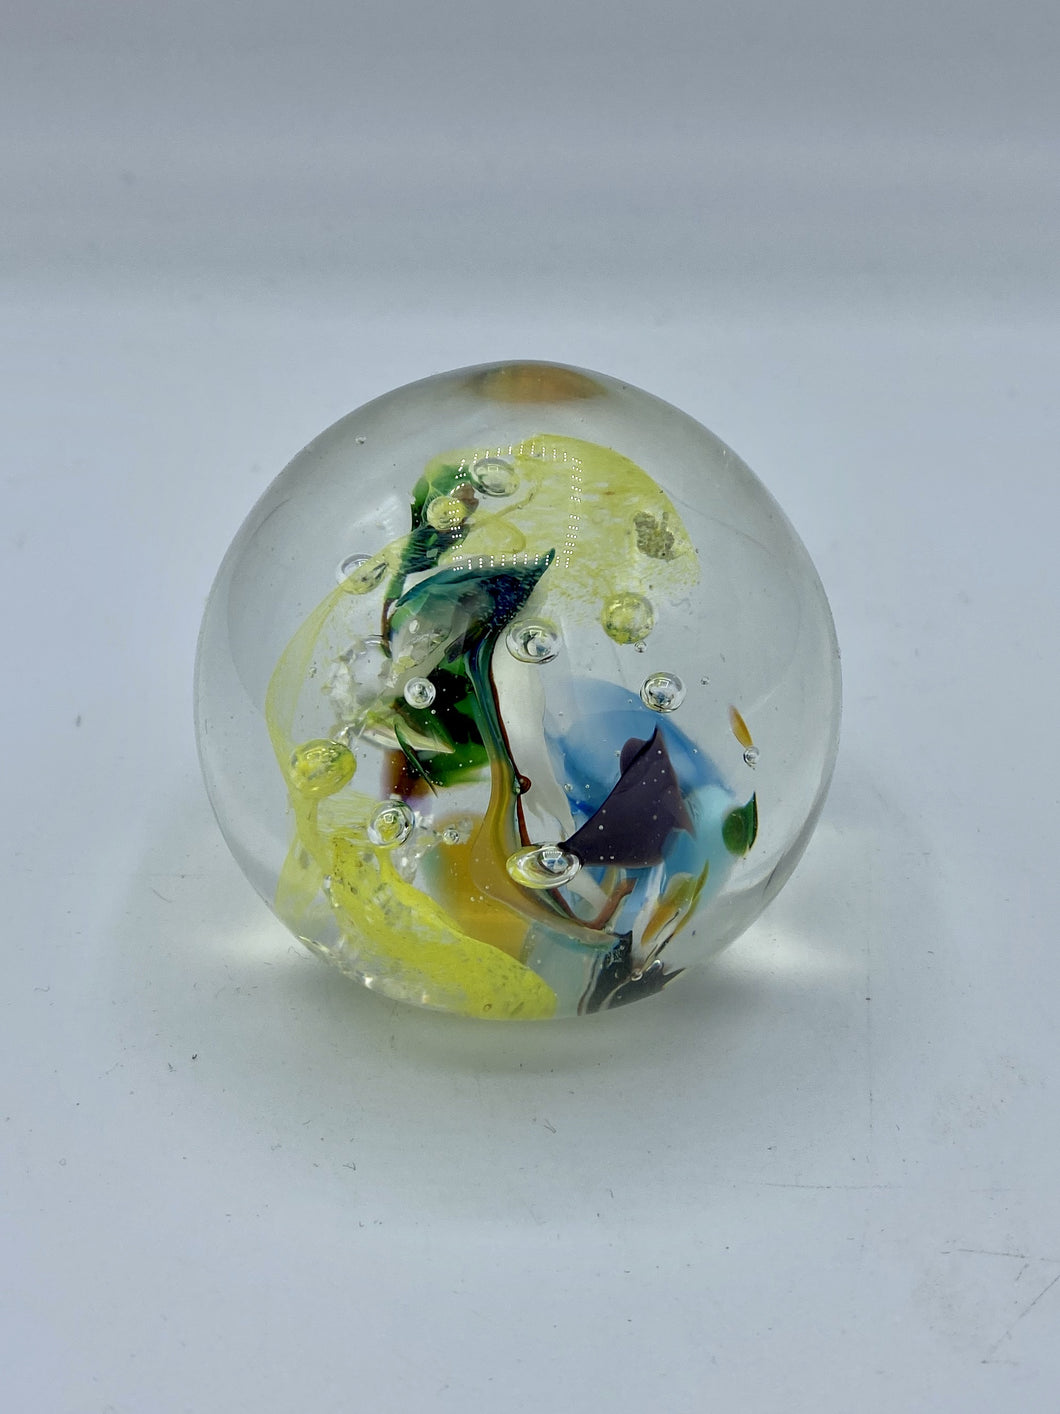 Small Chaos Paperweight